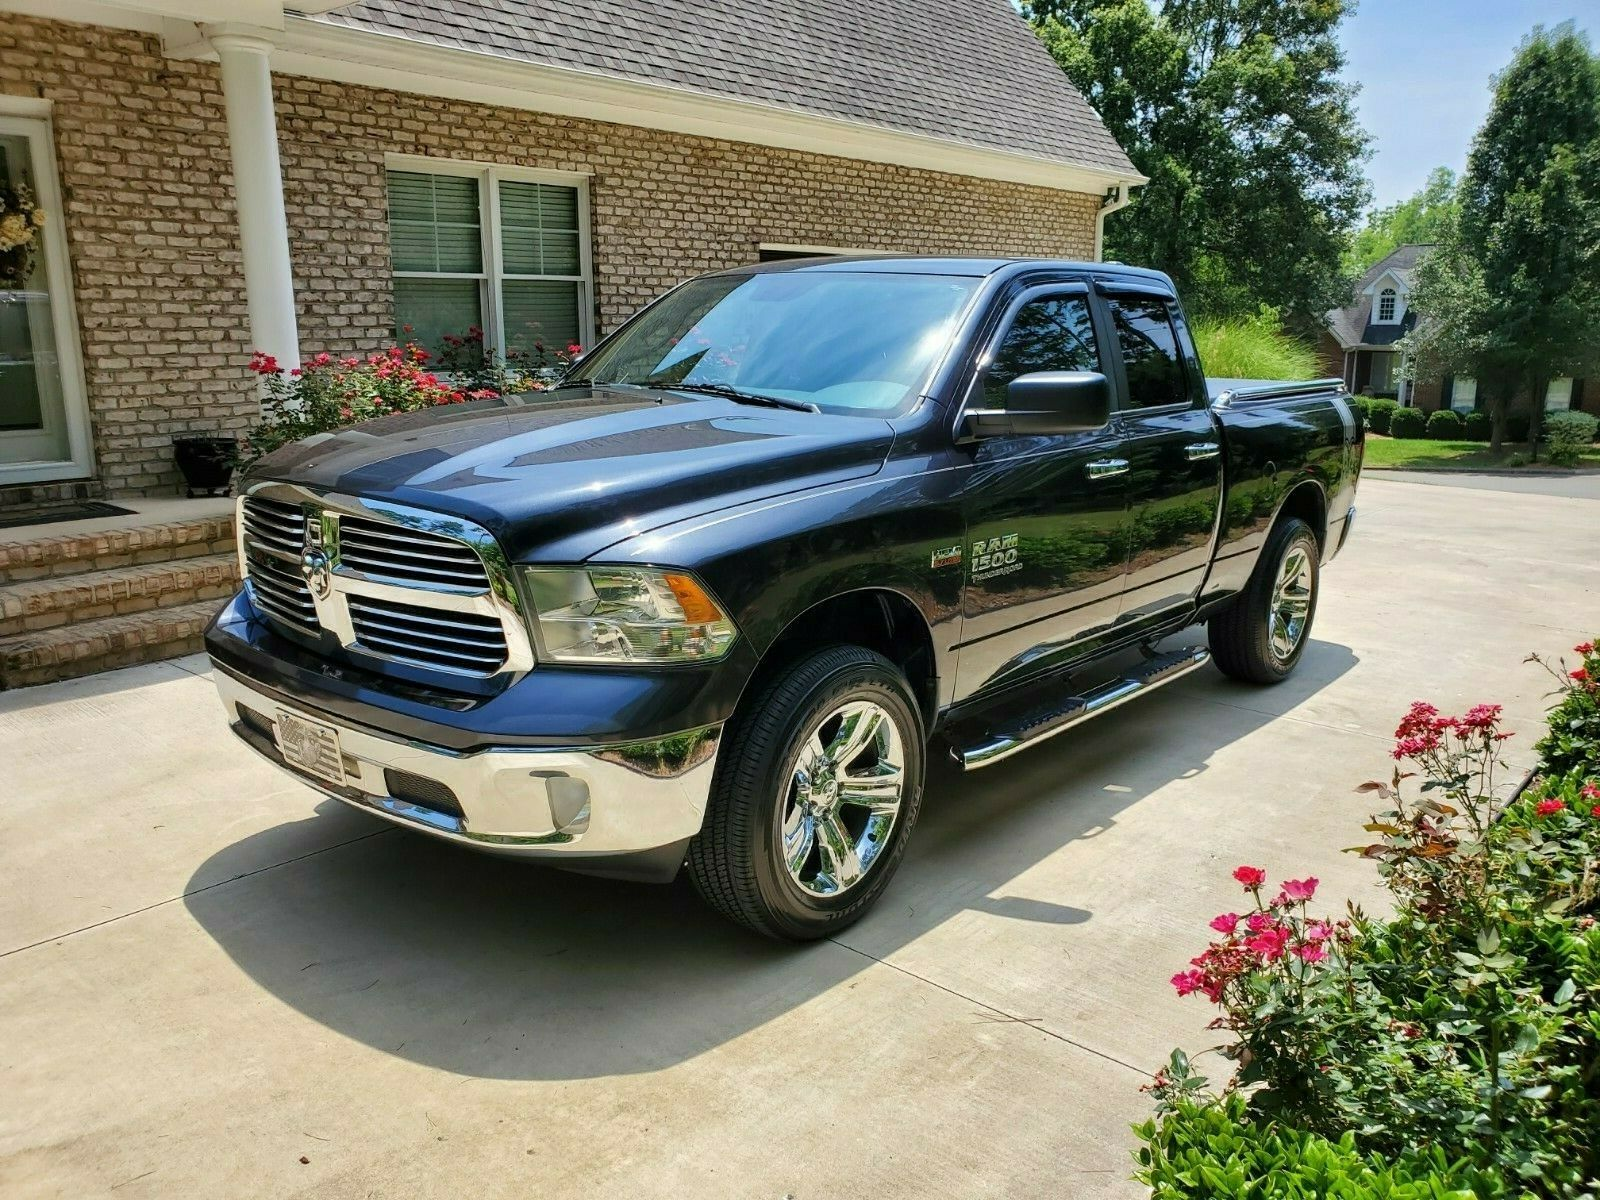 very clean 2014 Dodge Ram 1500 SLT lifted